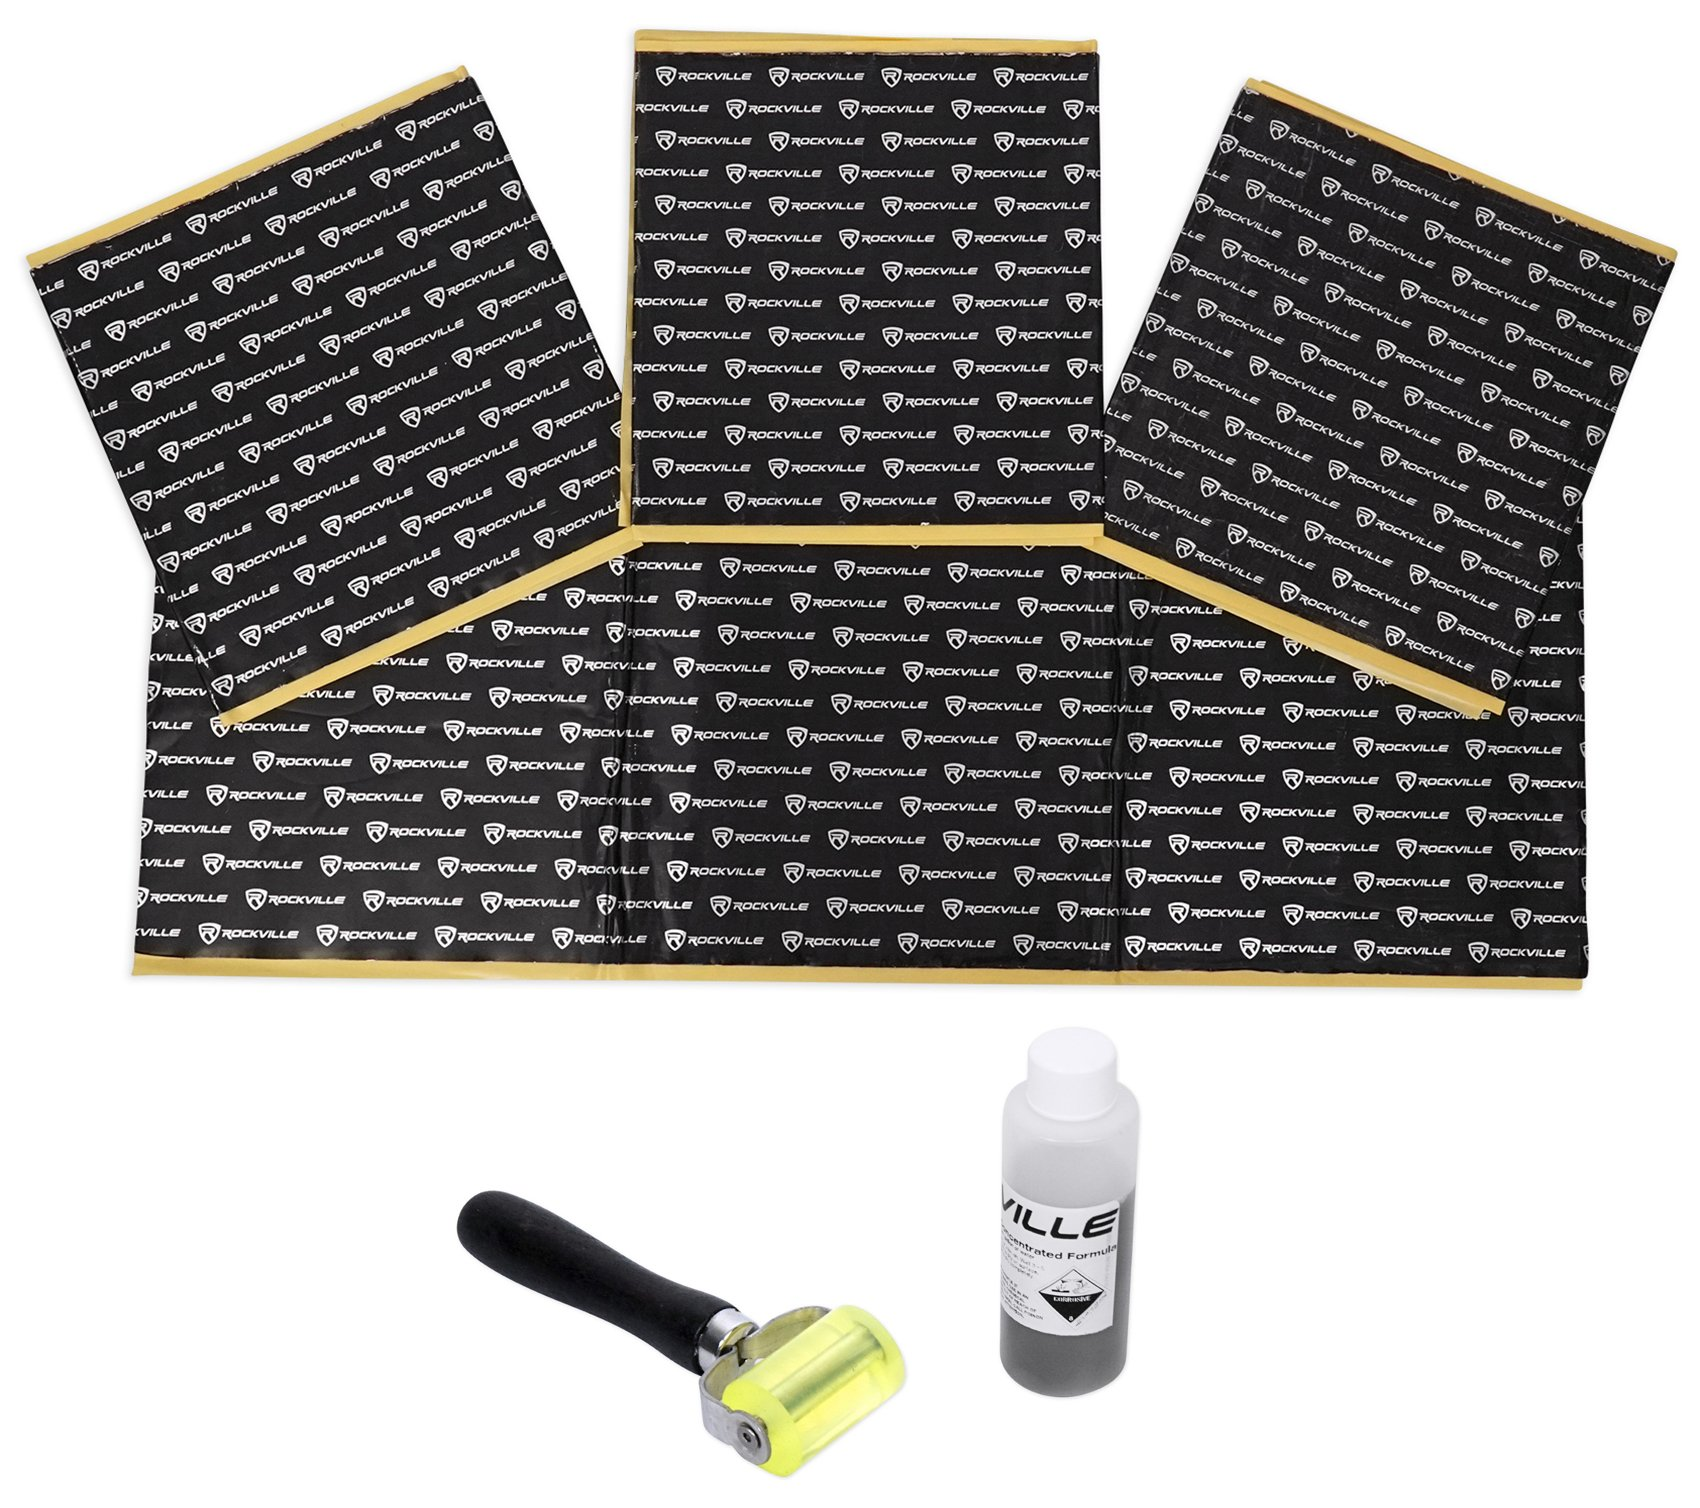 Rockville Rockmat RM12-B 12 Sq Ft Sound Dampening/Deadening Butyl Rubber Car Kit